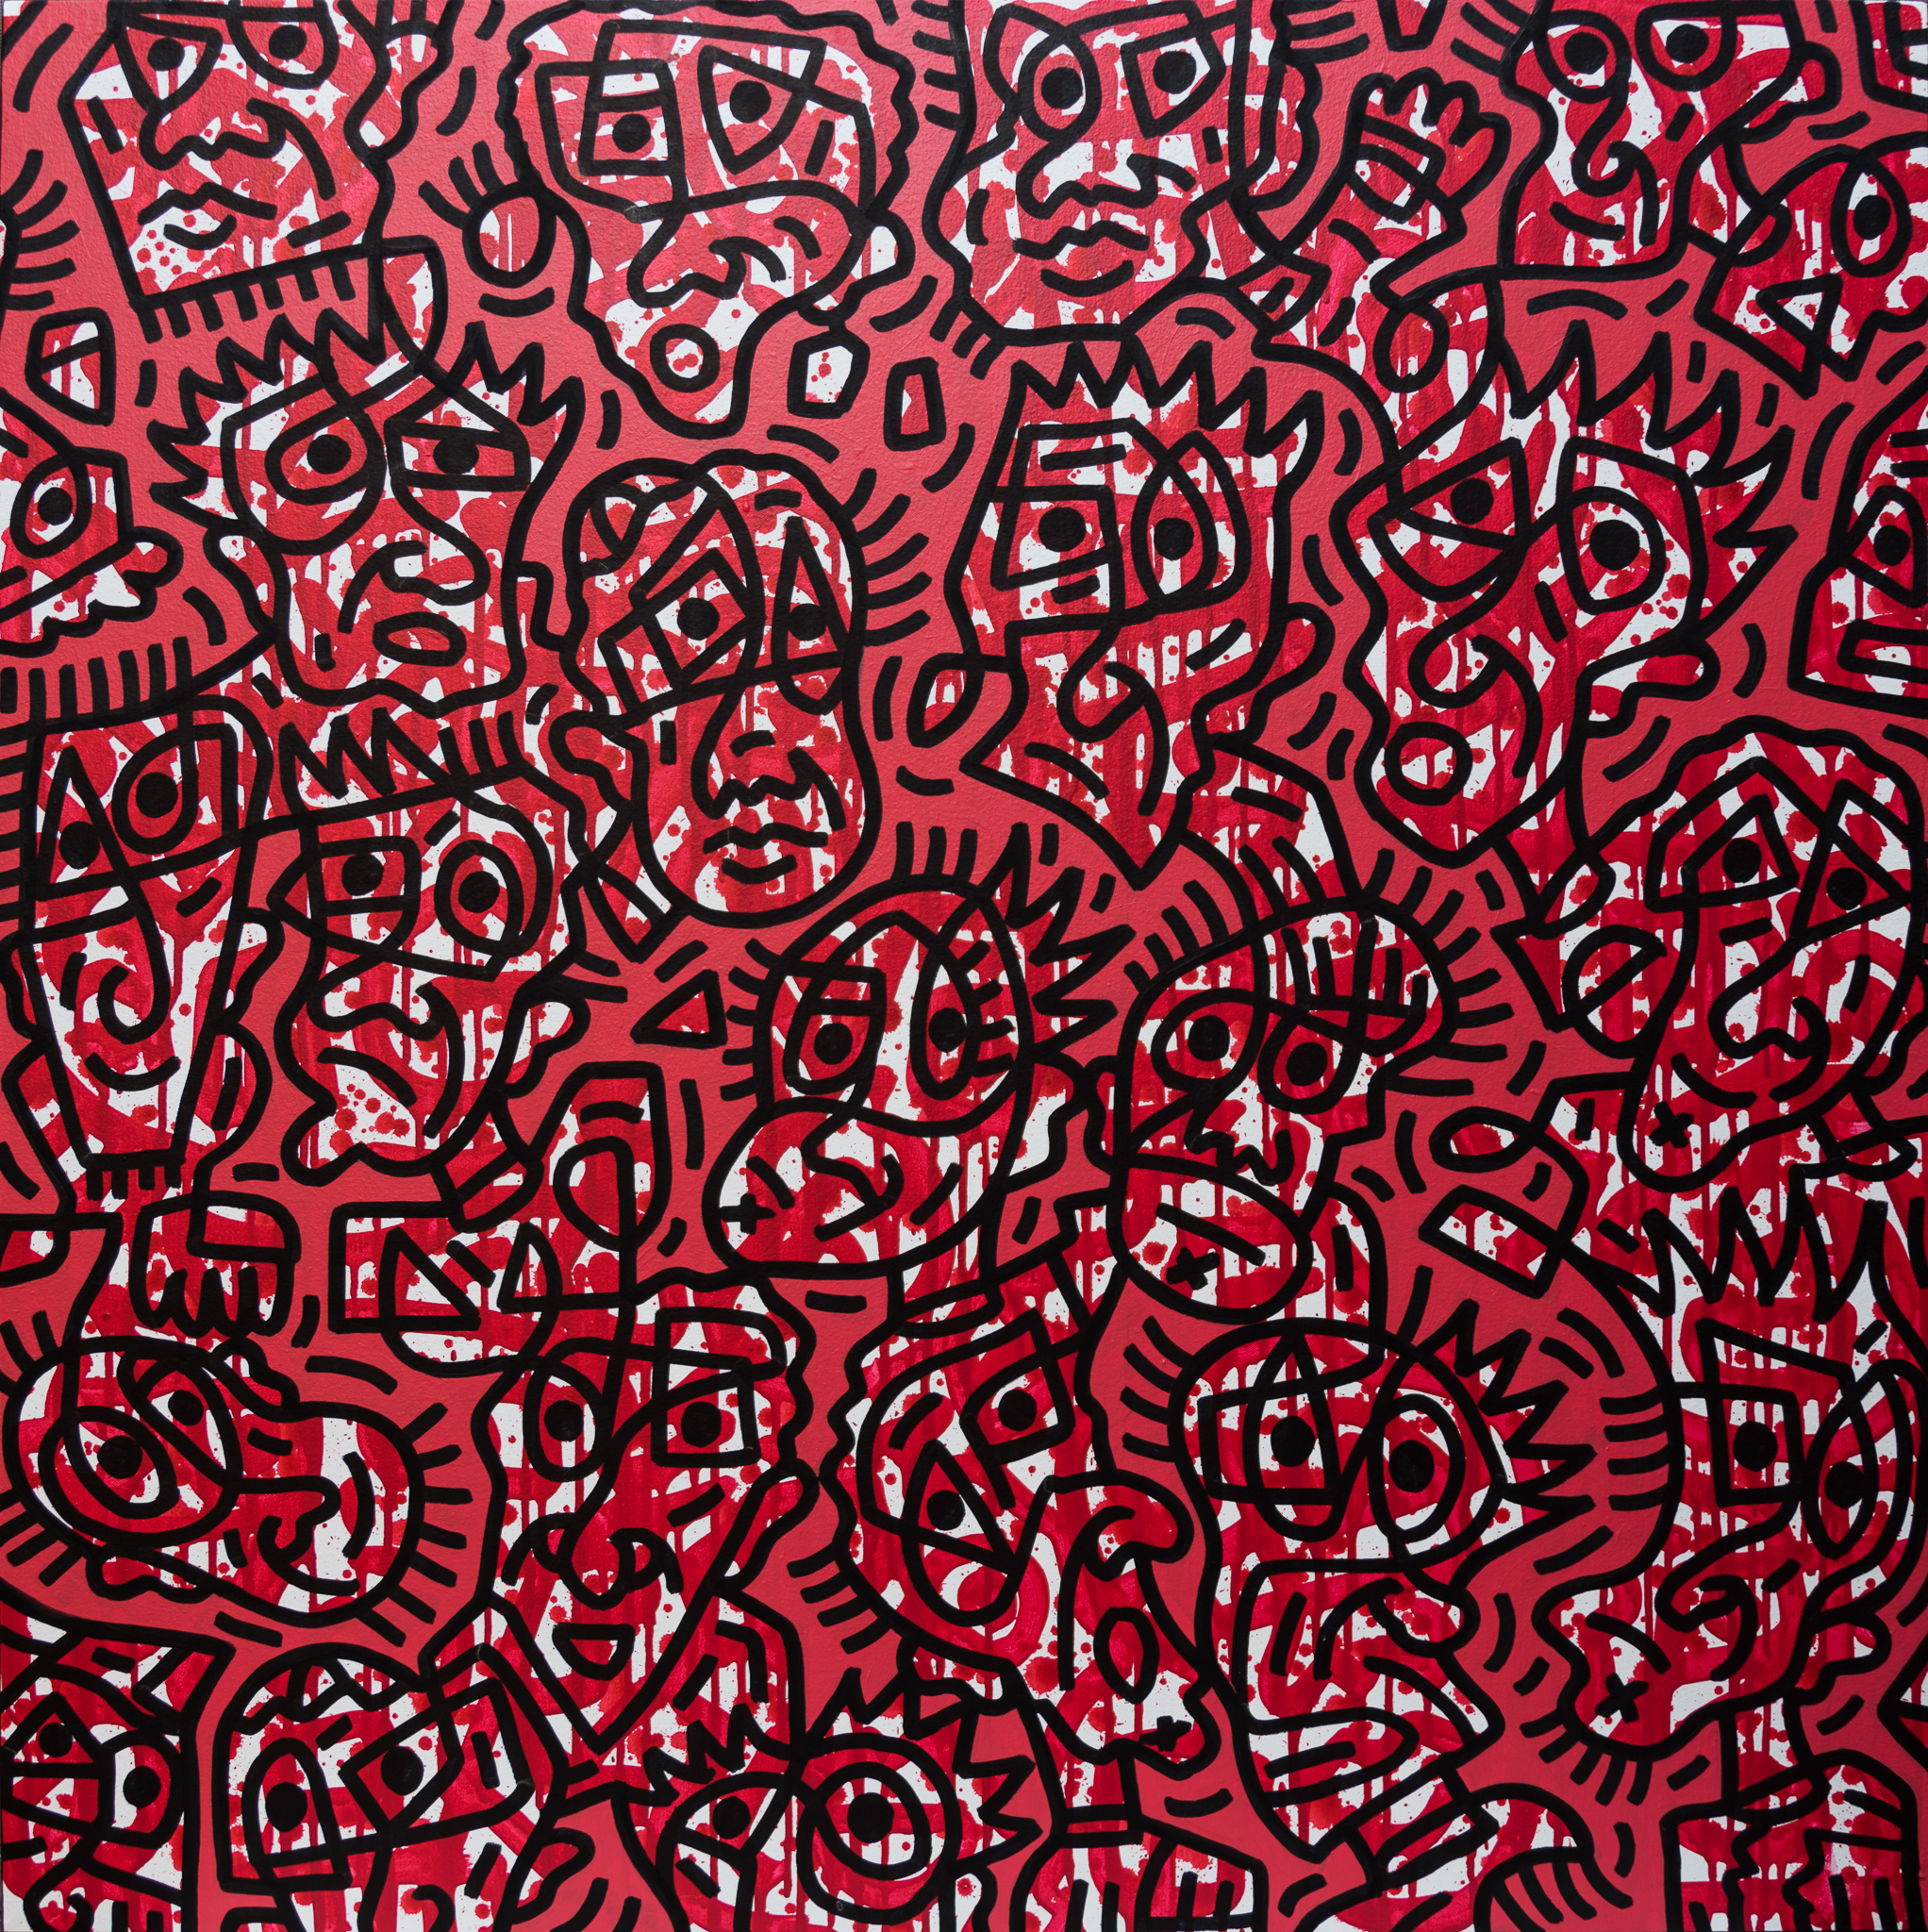 Red Facial Forms #2, enamel on canvas, 100x100cm, SOLD